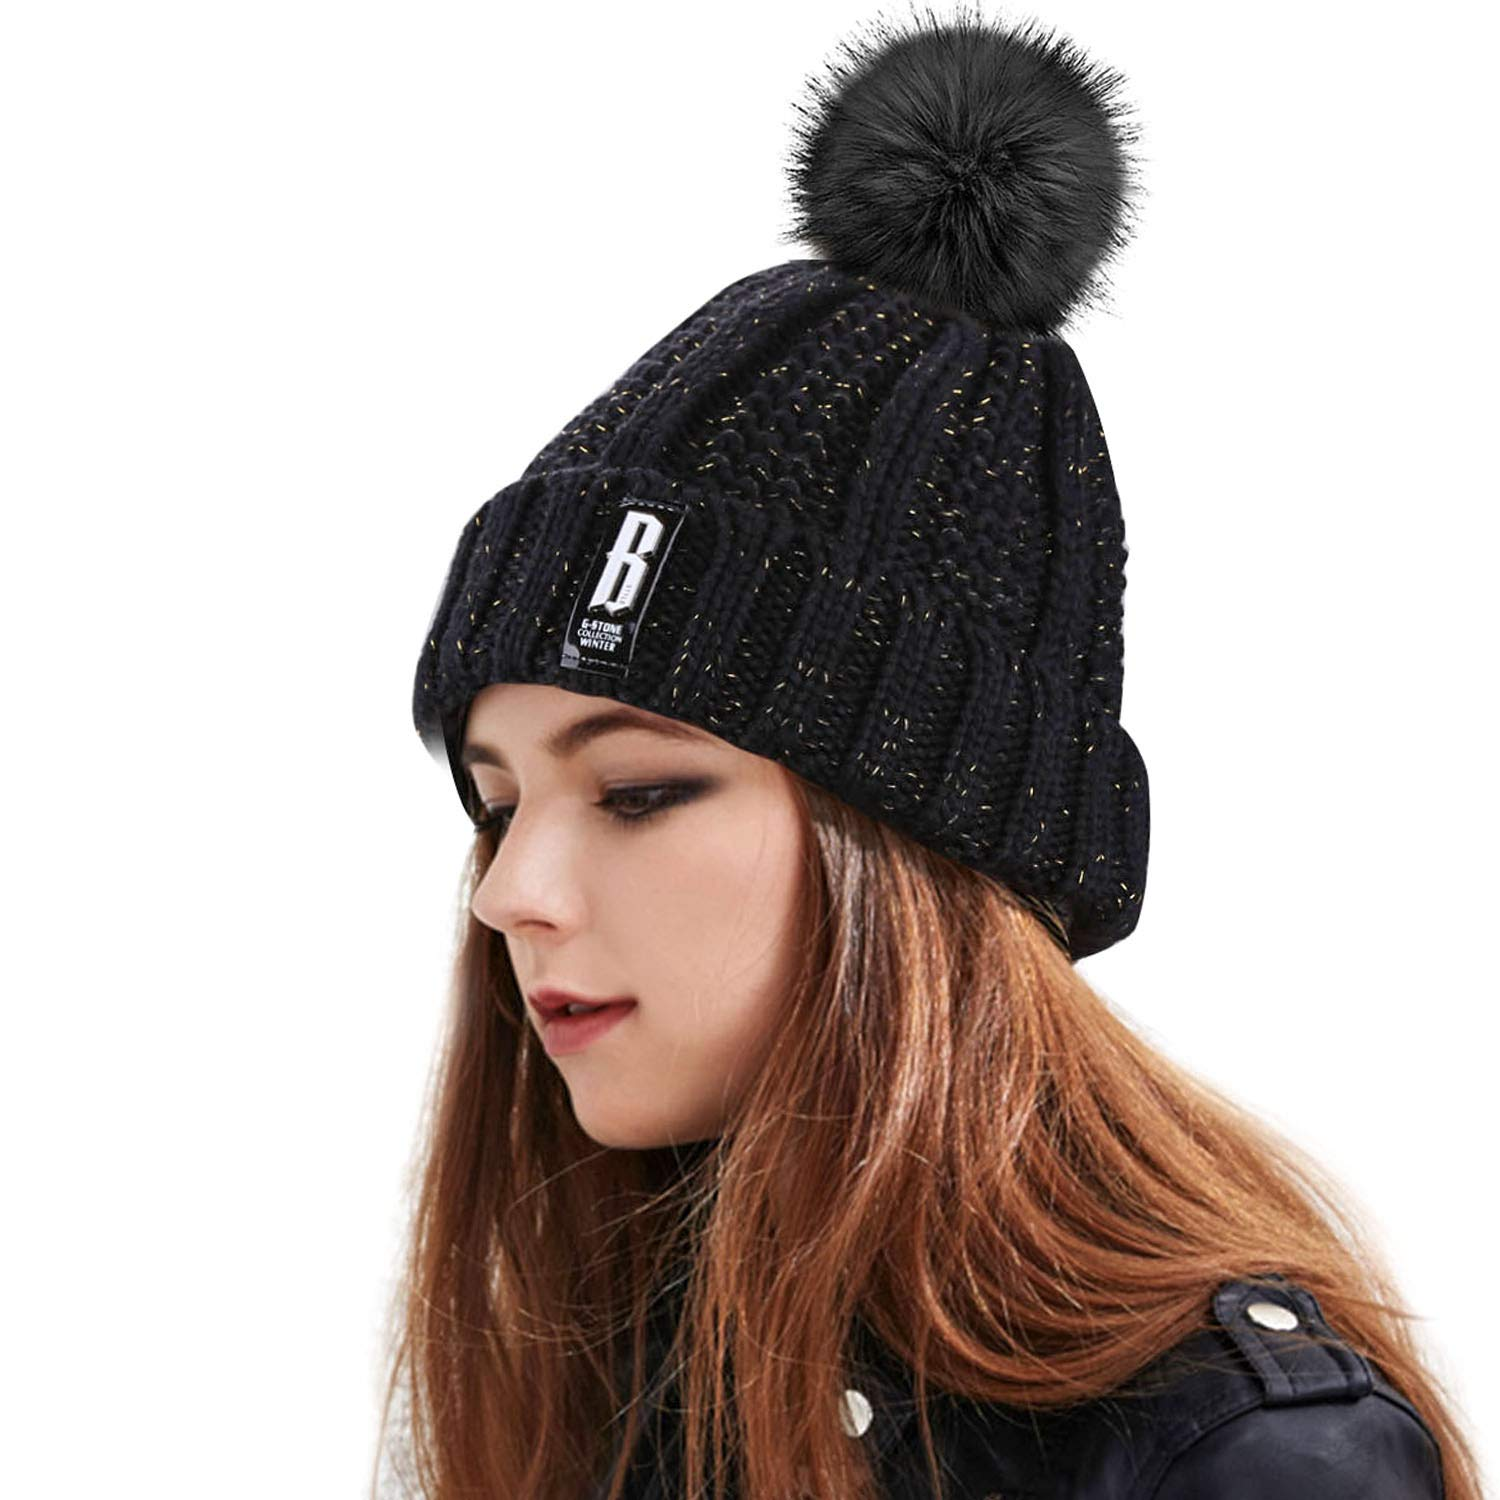 Women\'s Winter Warm Pom Pom Beanie Hat,Proking Warm Hand Knit Fleece Lined Beanie Hats for Women,Thick Slouchy Knie Snow Skull Ski Caps for Ladies(Black)